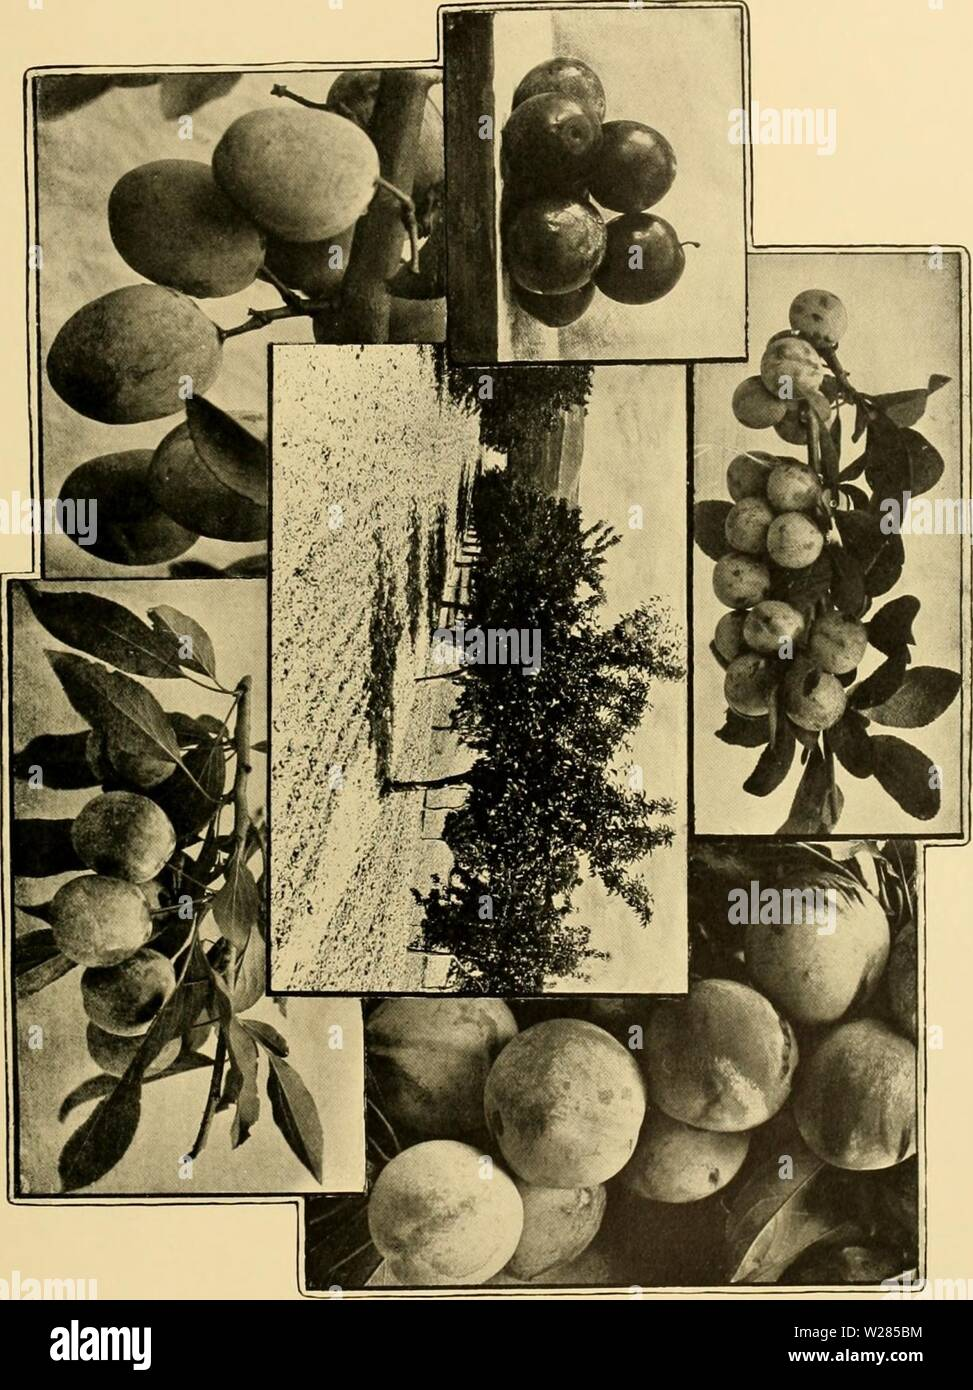 Archive image from page 364 of Cyclopedia of American horticulture . Cyclopedia of American horticulture : comprising suggestions for cultivation of horticultural plants, descriptions of the species of fruits, vegetables, flowers, and ornamental plants sold in the United States and Canada, together with geographical and biographical sketches  cyclopediaofame03bail Year: 1906 Stock Photo